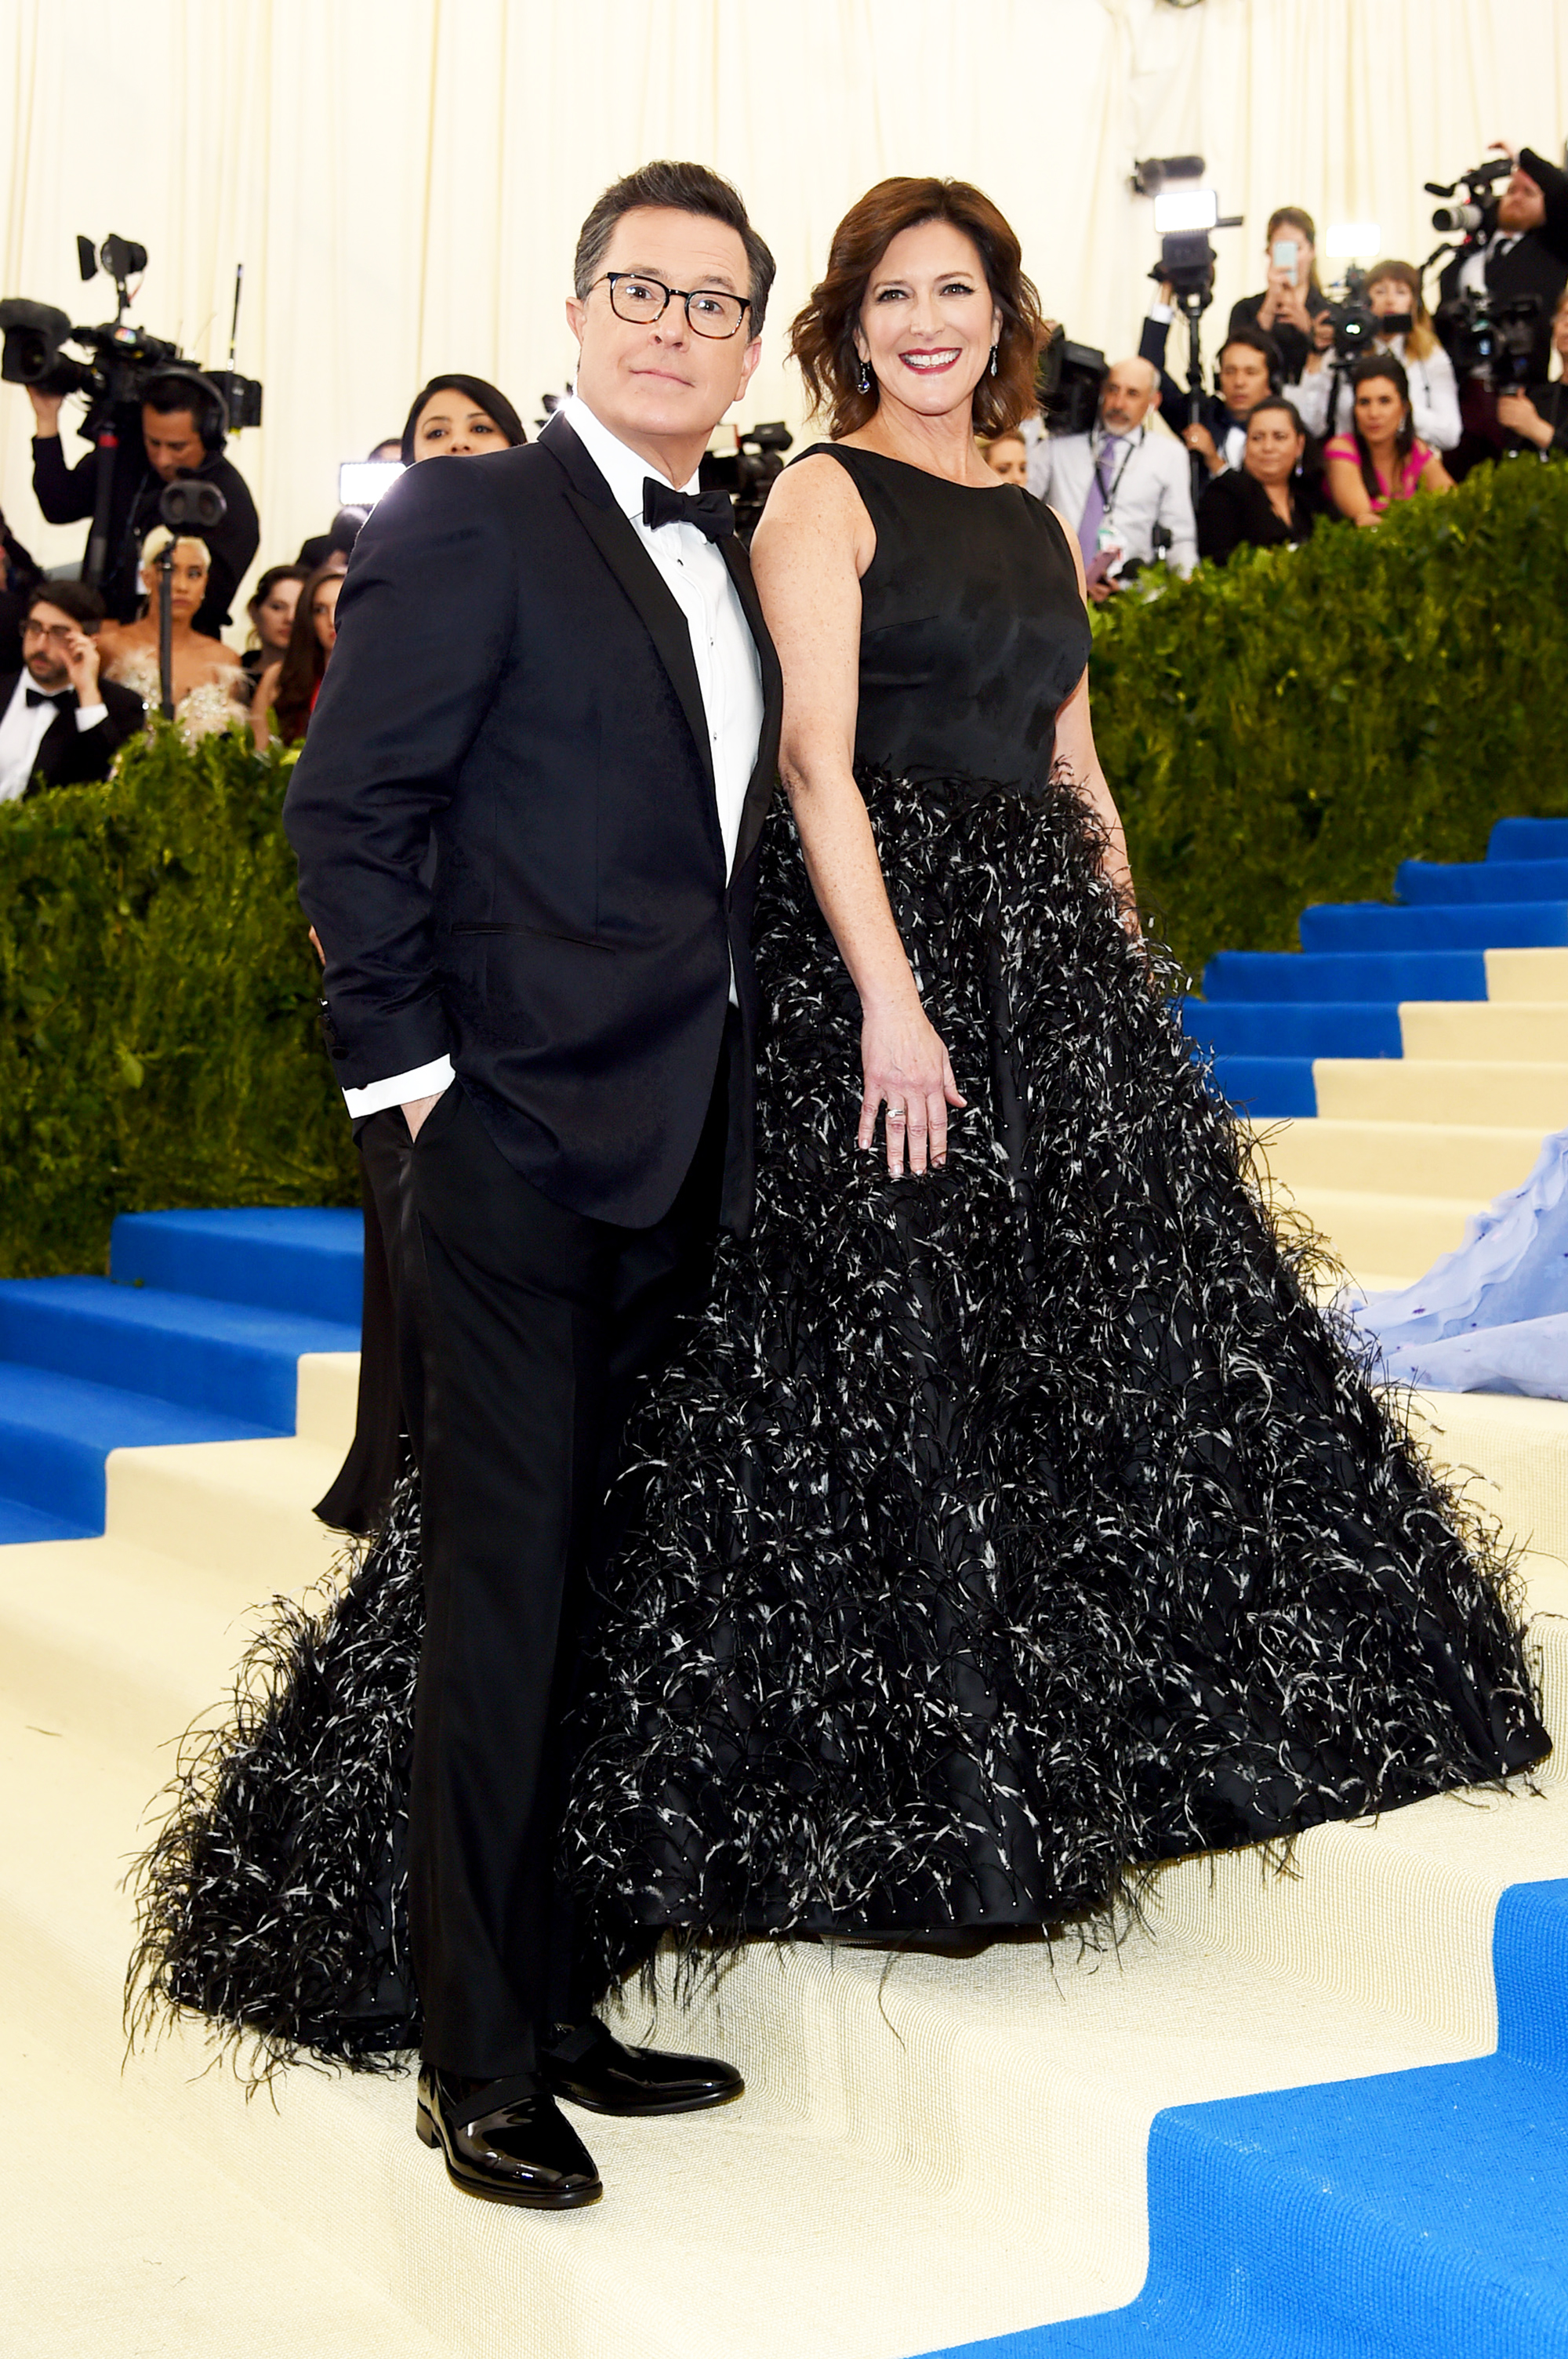 Stephen Colbert and Evelyn McGee attend The Metropolitan Museum of Art's Costume Institute benefit gala celebrating the opening of the Rei Kawakubo/Comme des Garçons: Art of the In-Between exhibition in New York City, on May 1, 2017.